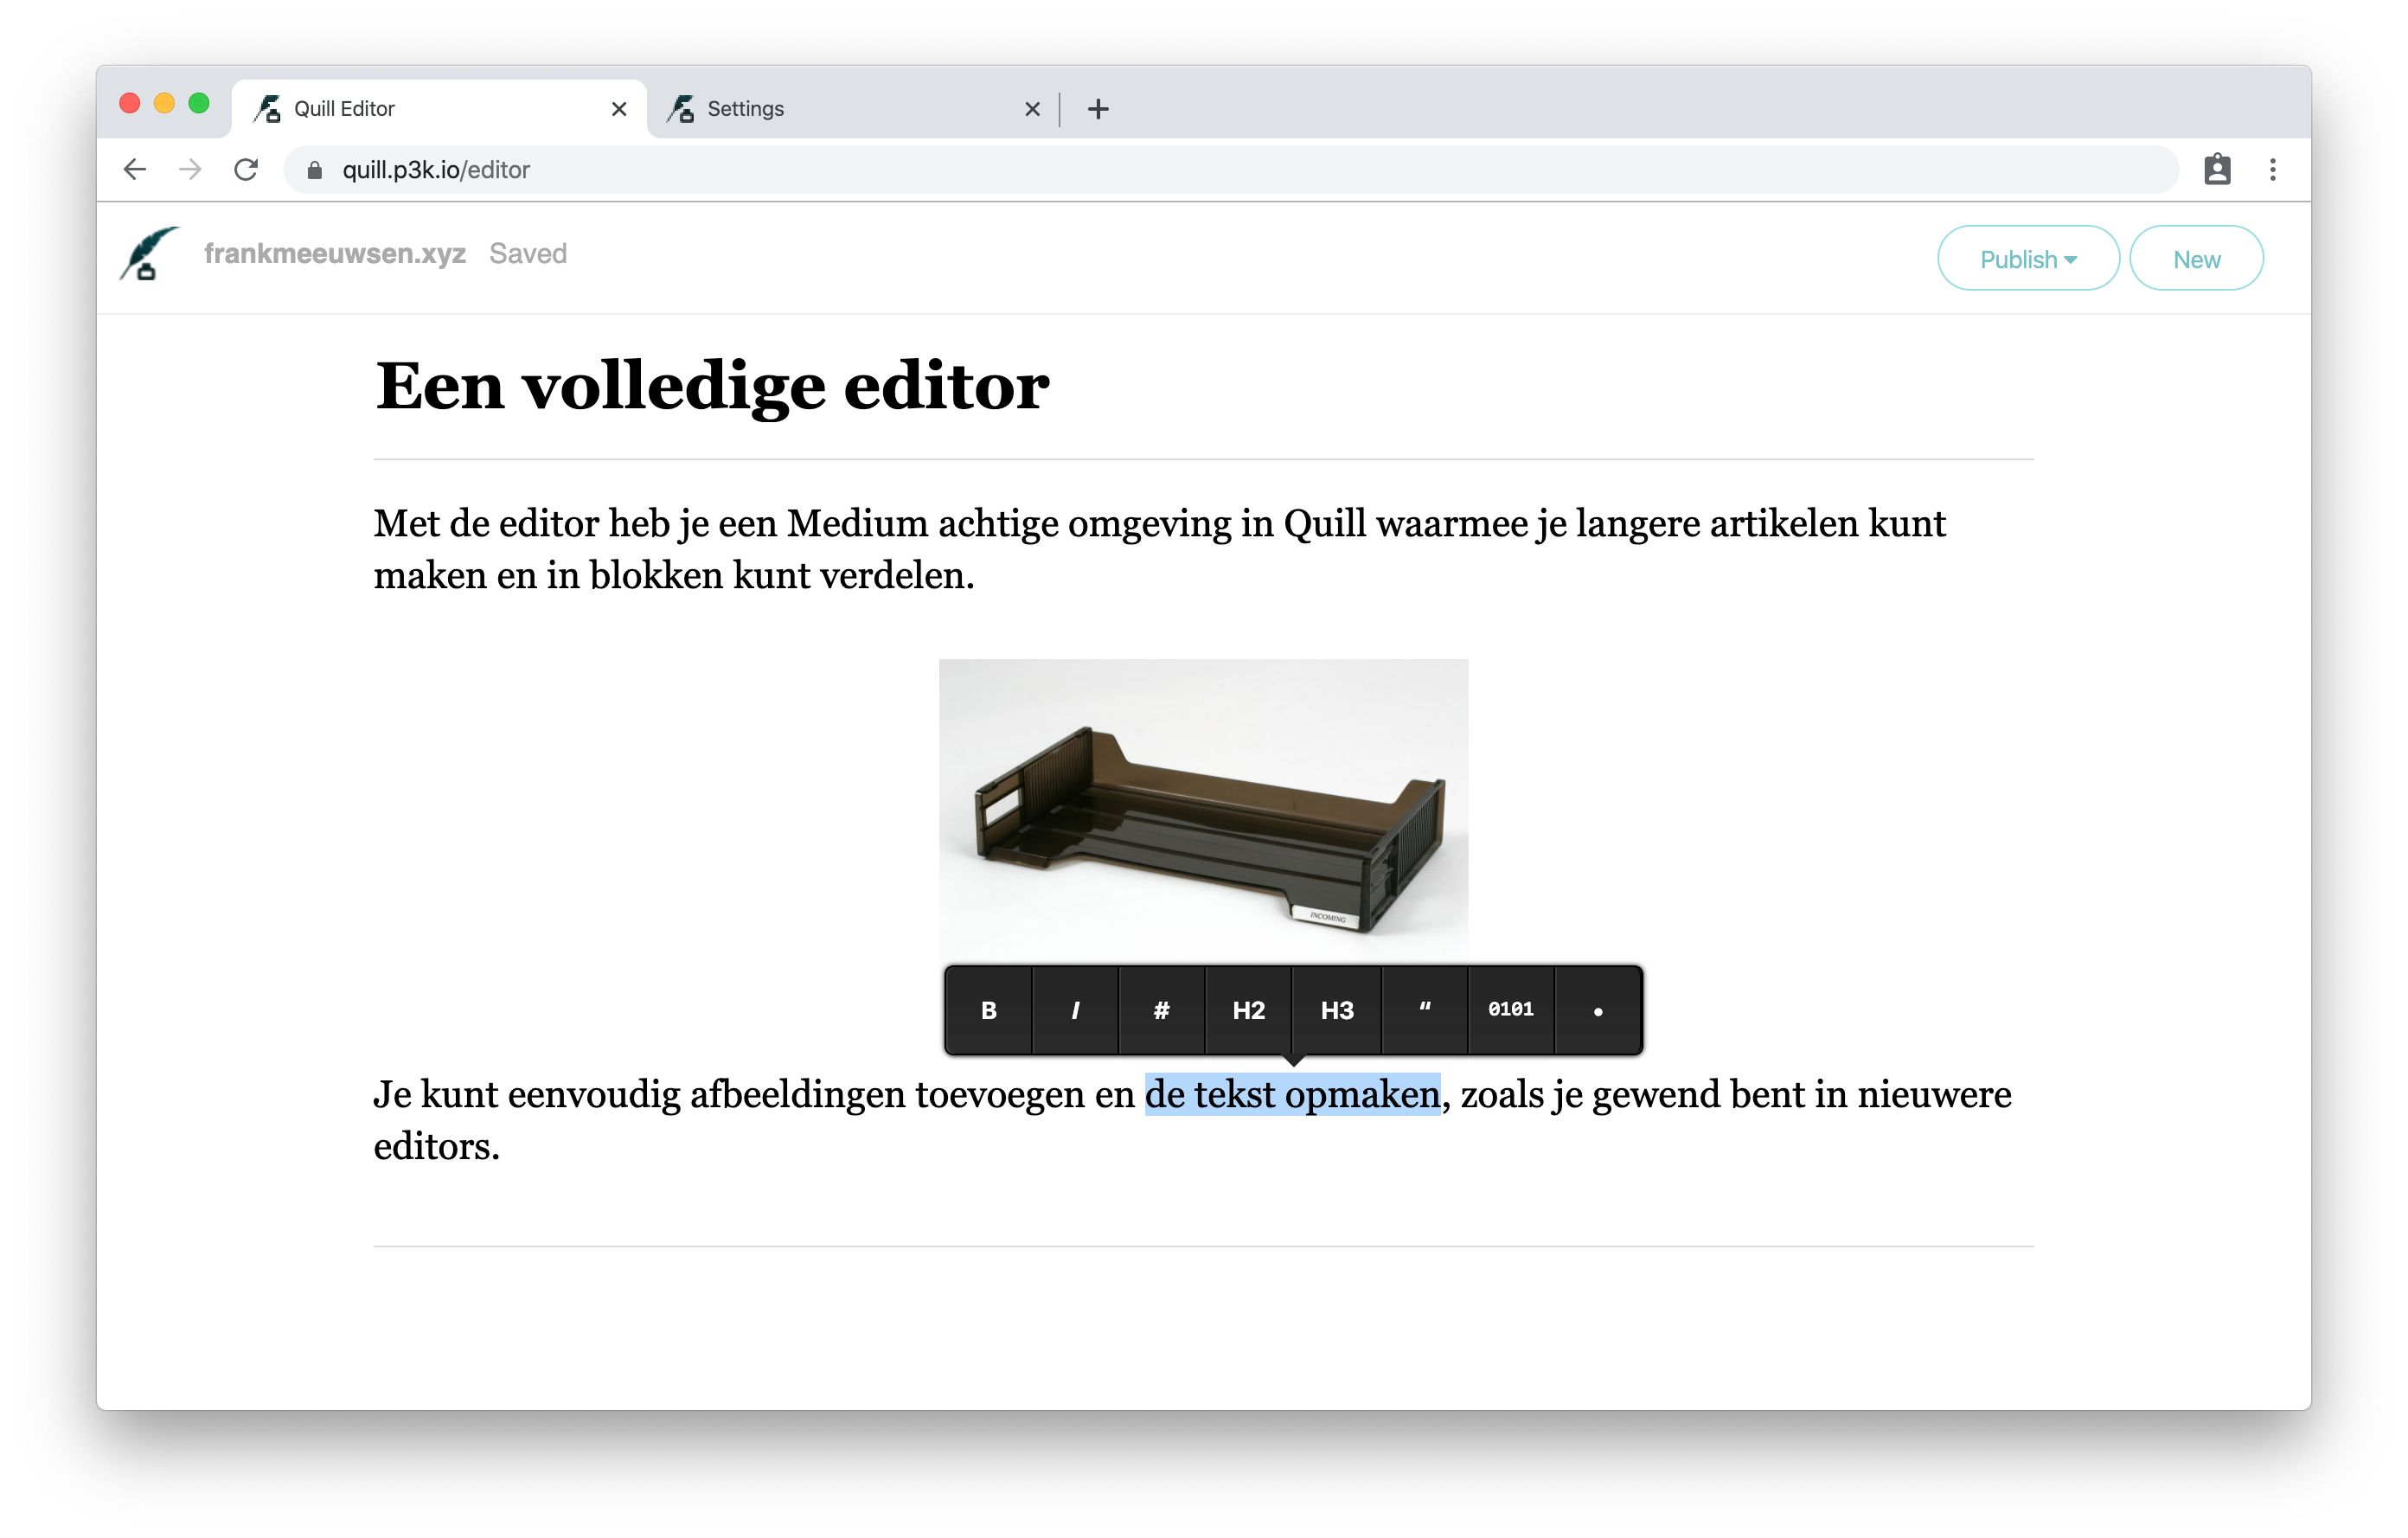 Quill volledige editor